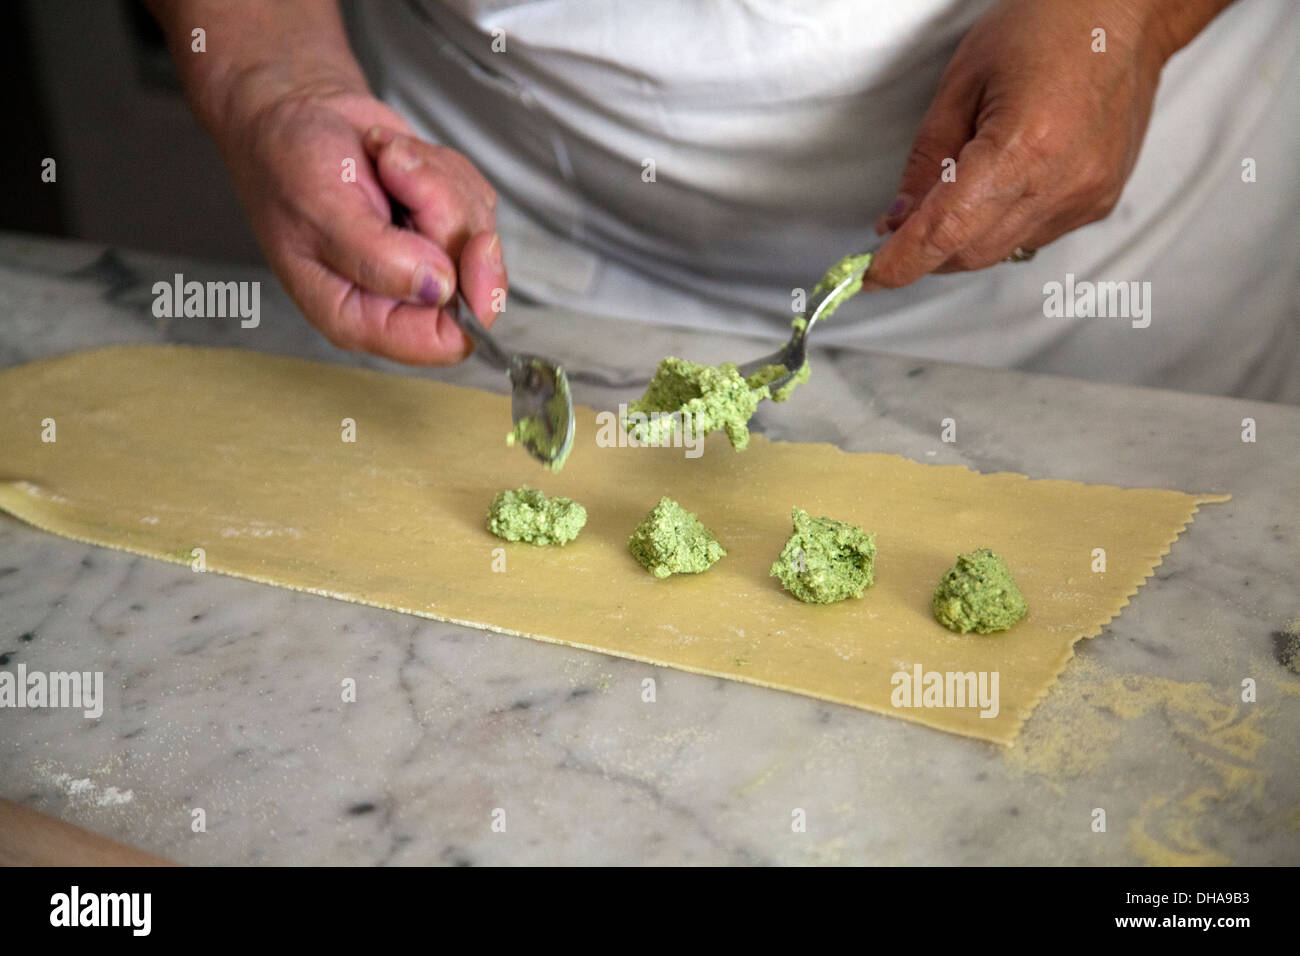 Woman Preparing Ravioli Fillings of Ricotta and Greens - Stock Image